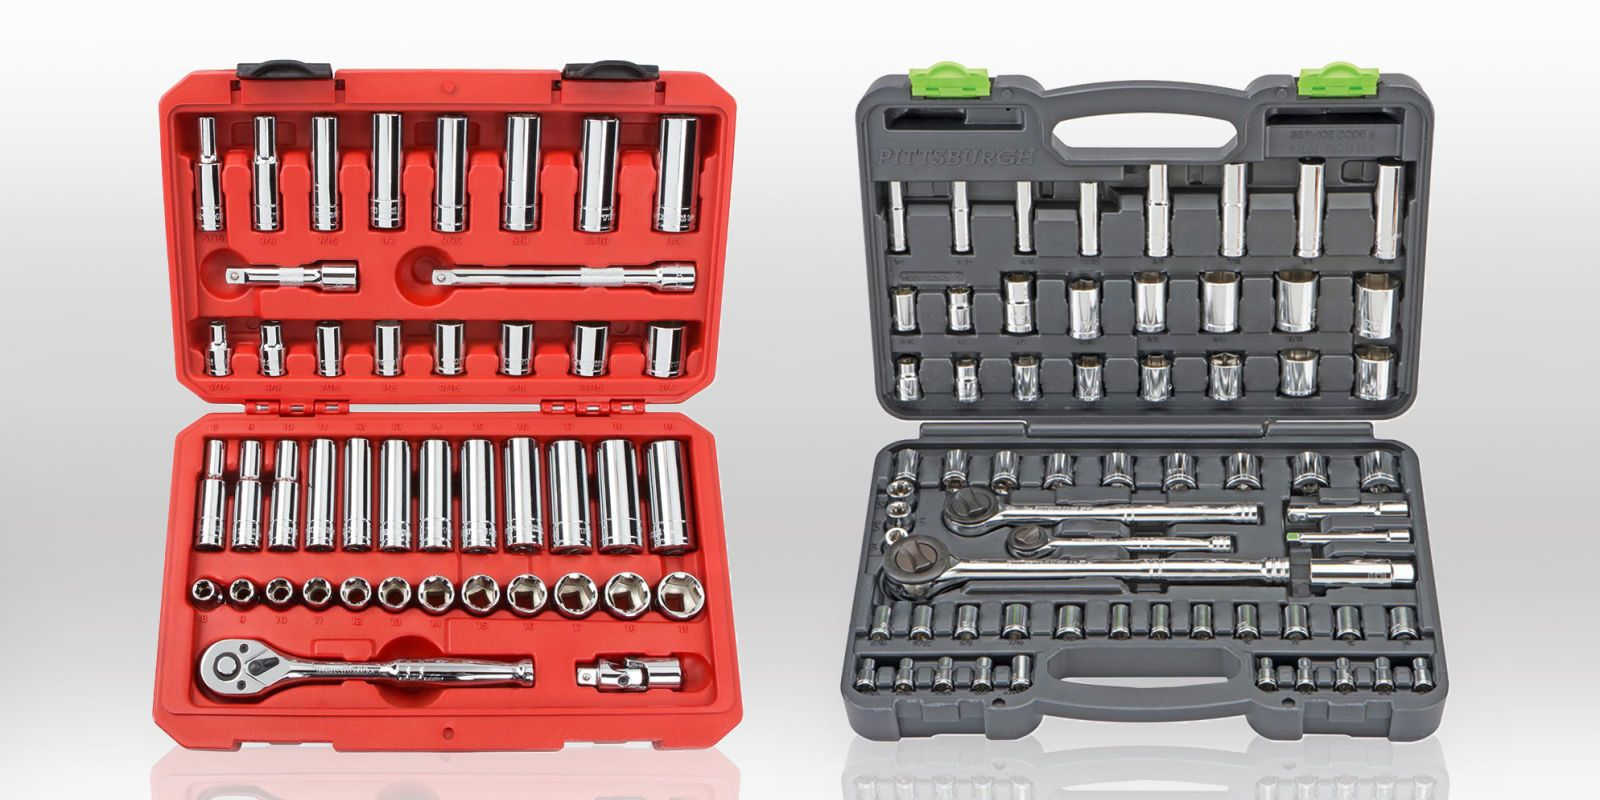 The Best Socket Sets for Day-to-Day Wrenching